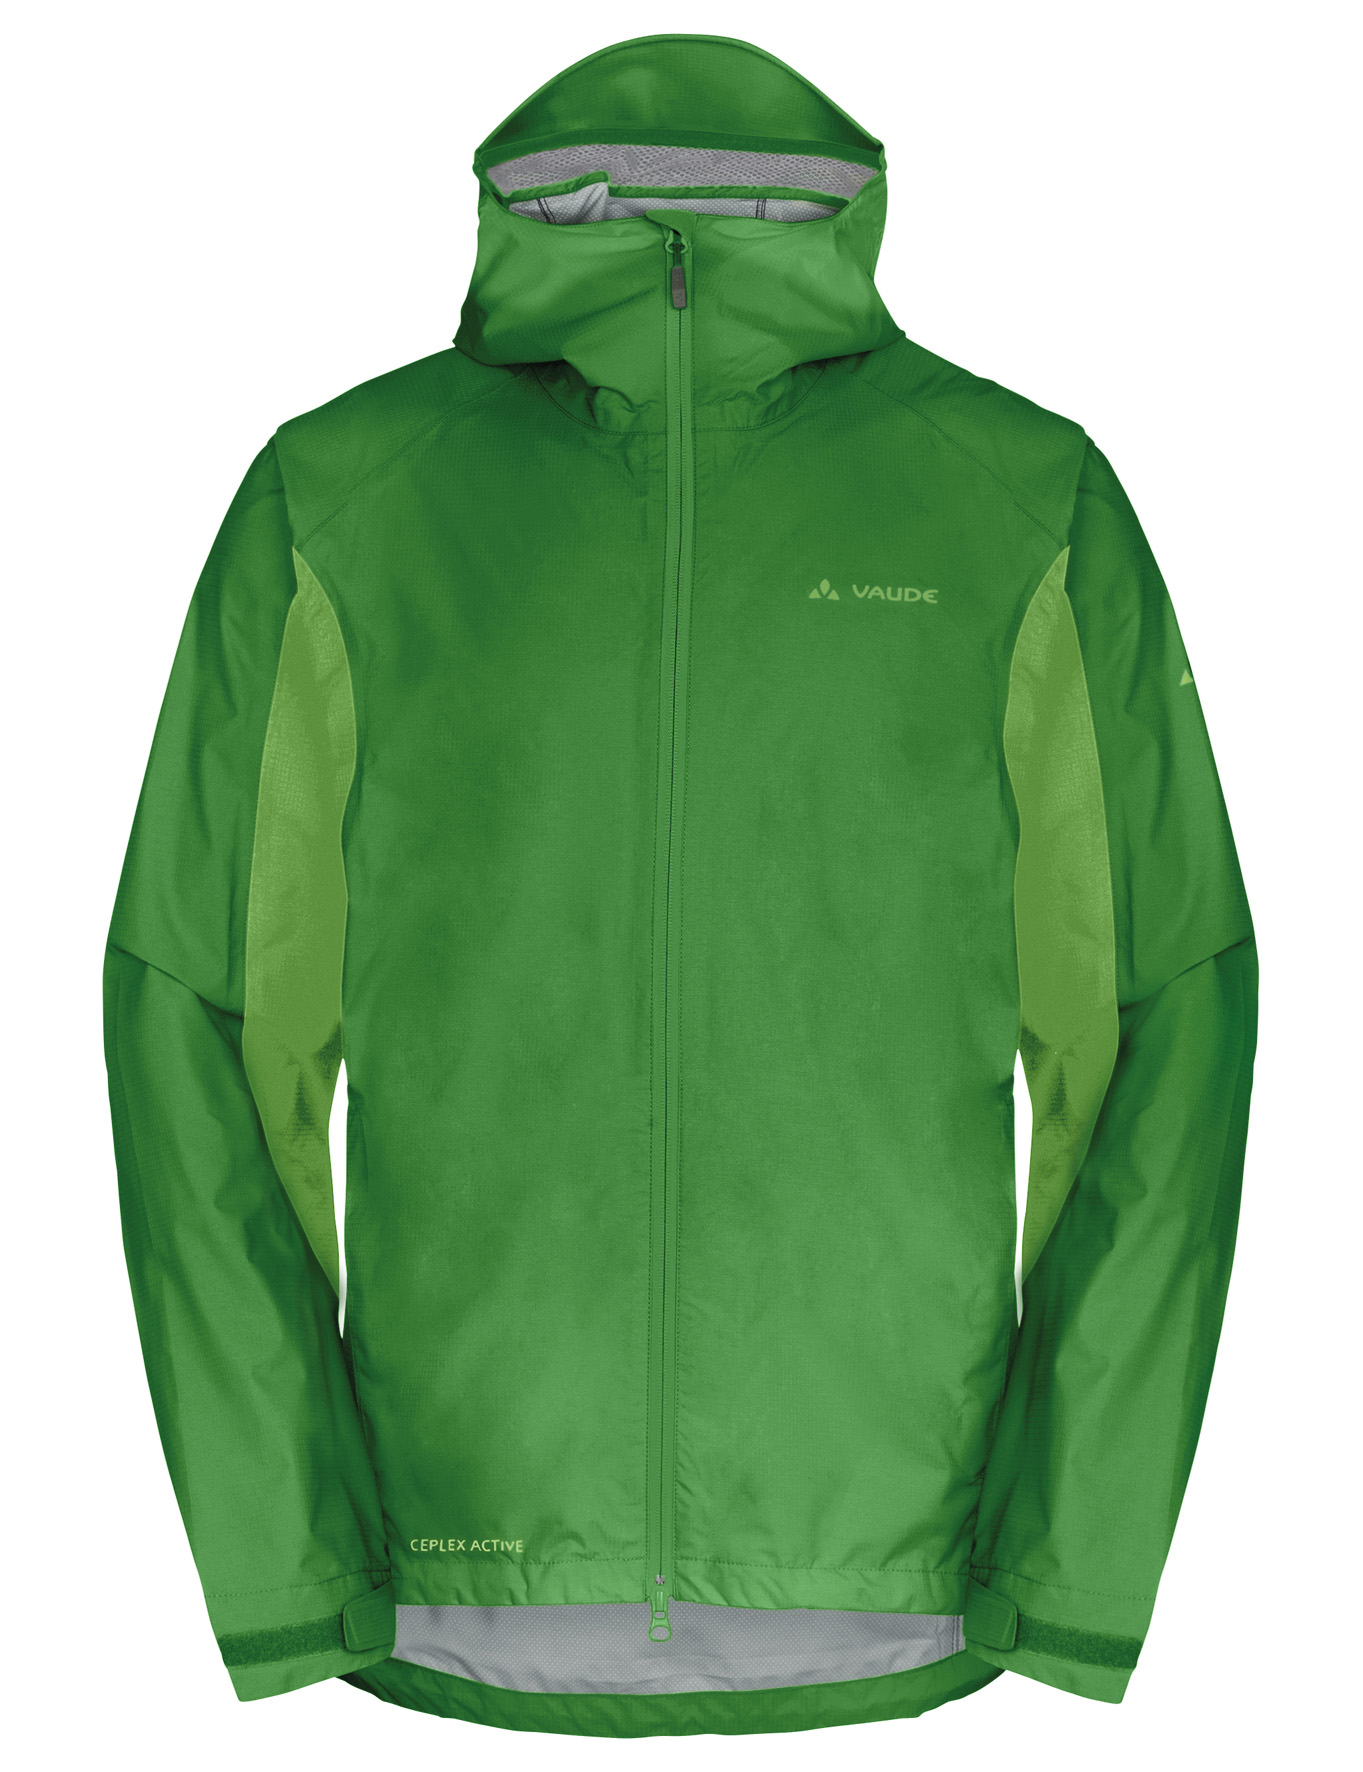 VAUDE Men´s Yaras Jacket parrot green Größe S - schneider-sports